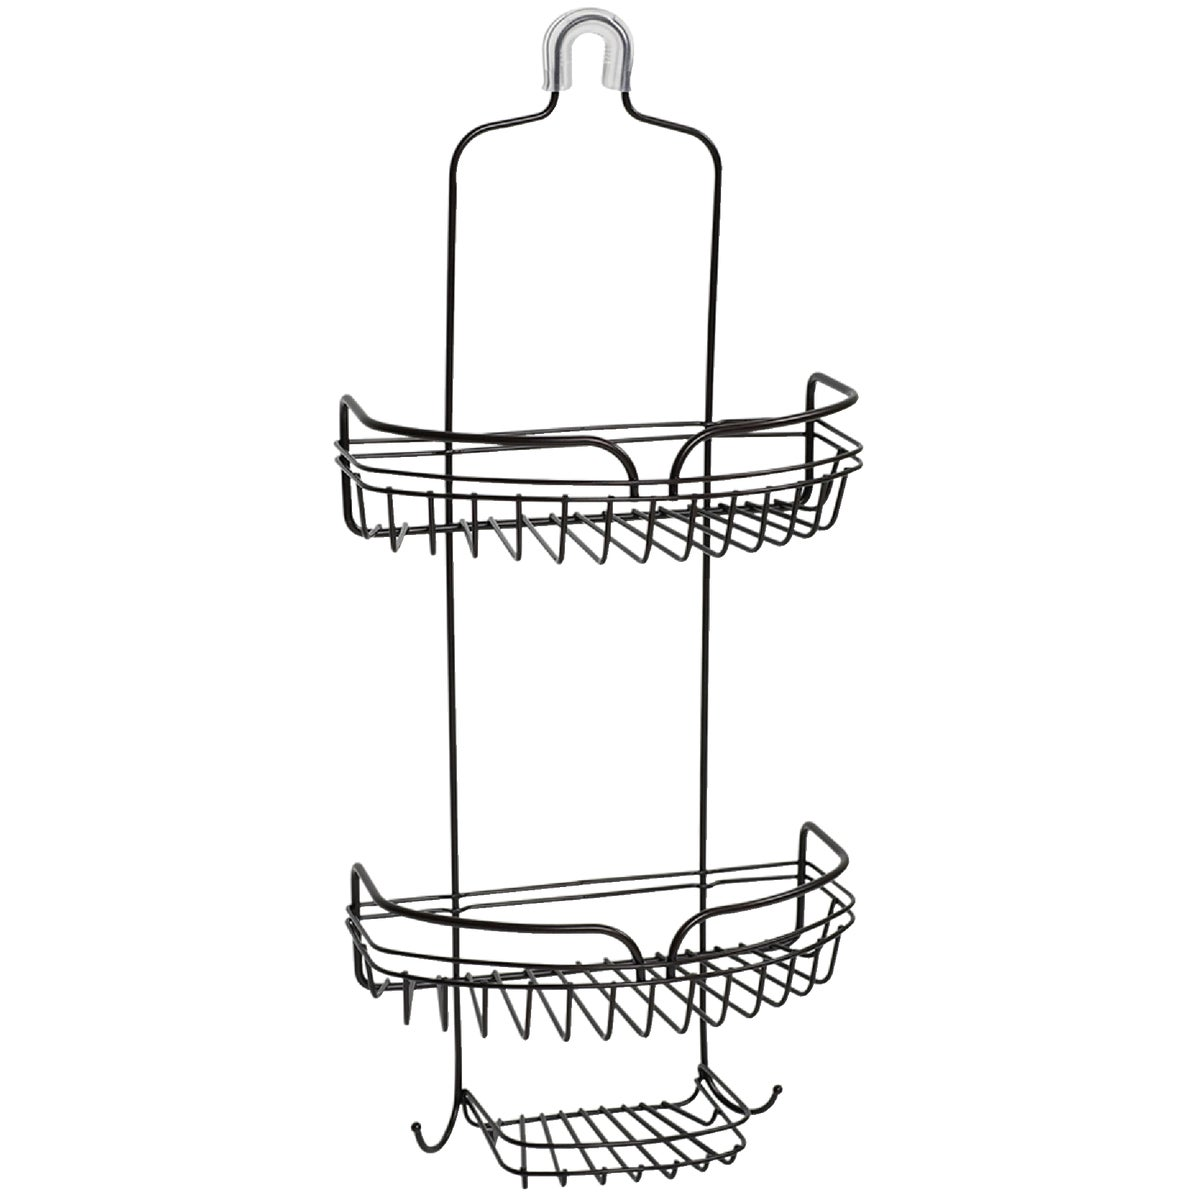 HB OVER-THE-SHOWER CADDY - 7529HB by Zenith Prod Corp